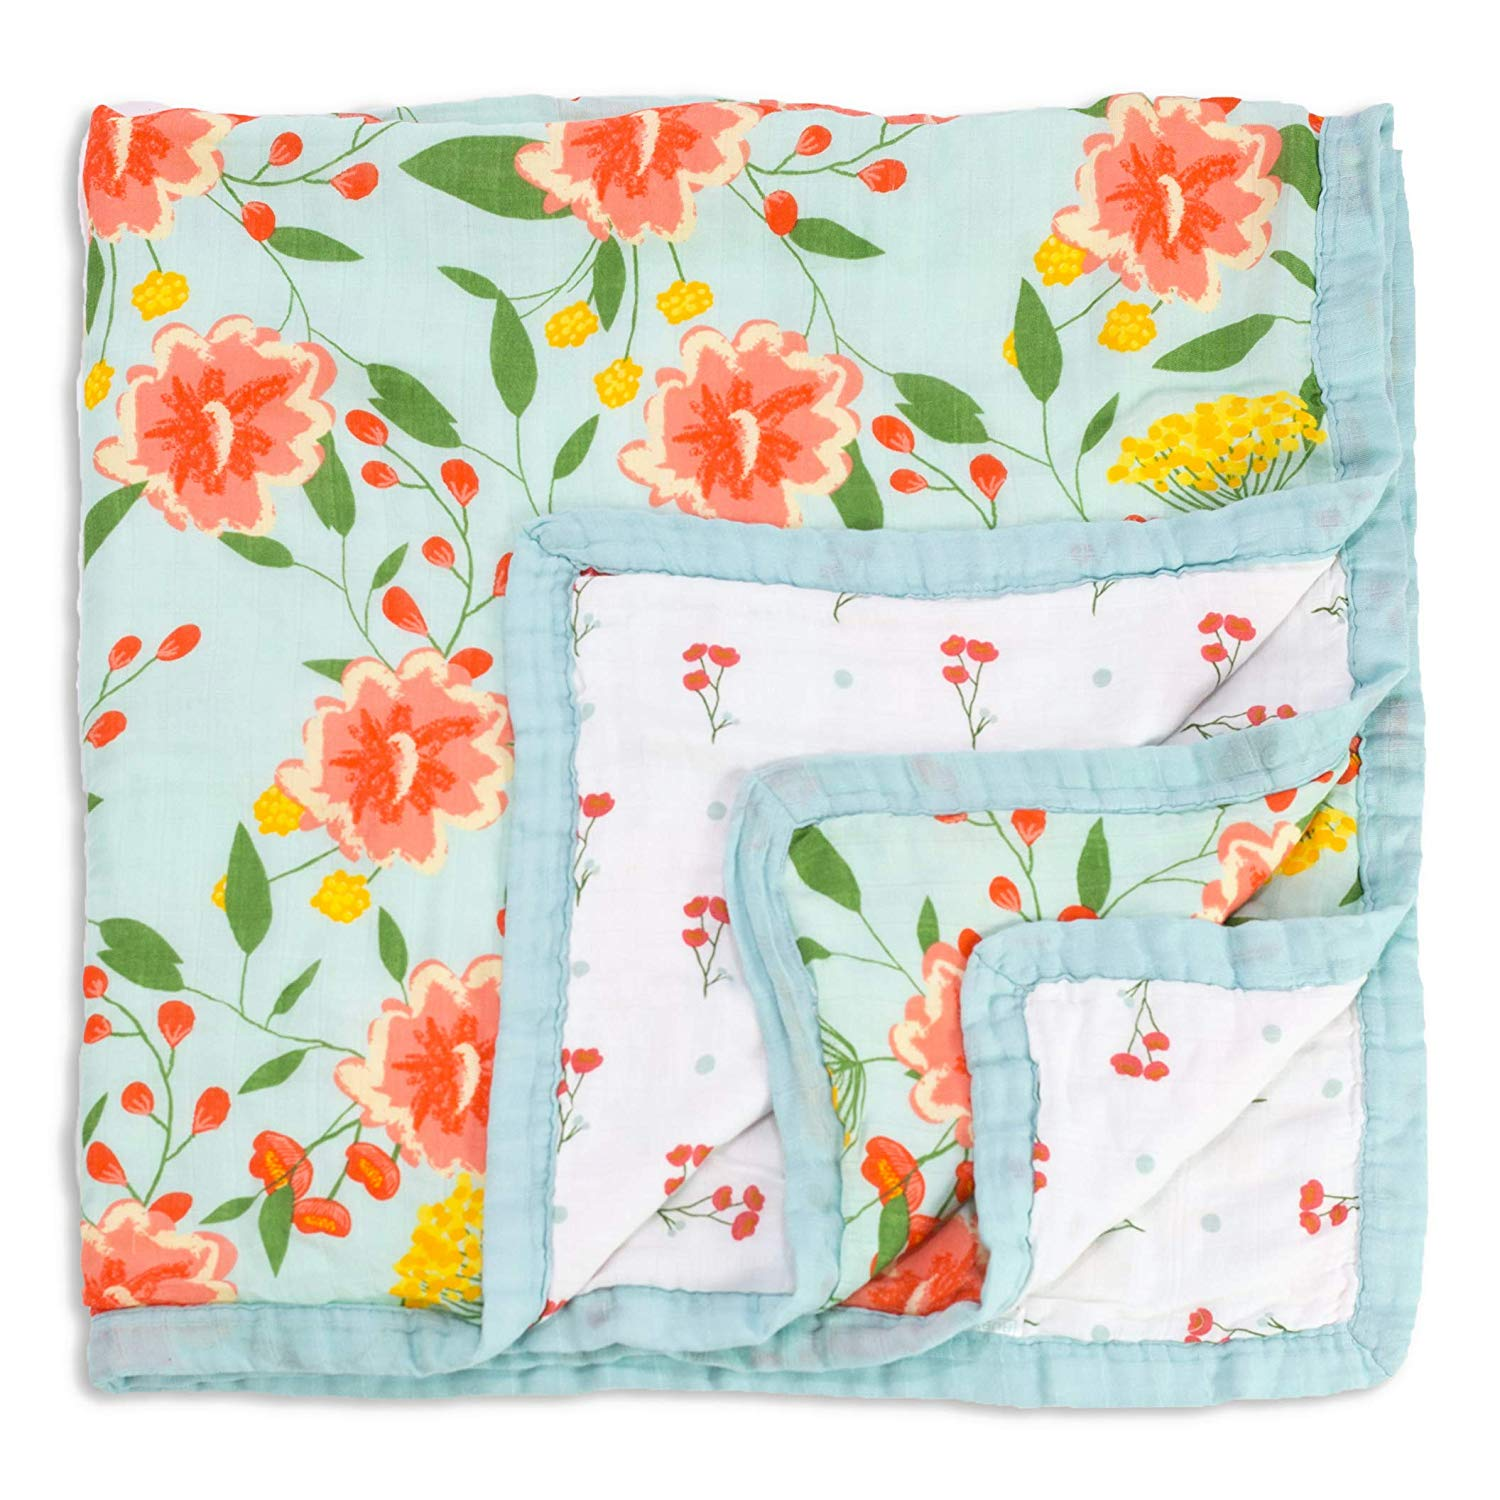 aden by Aden + anais Swaddle Blanket - baby blankets